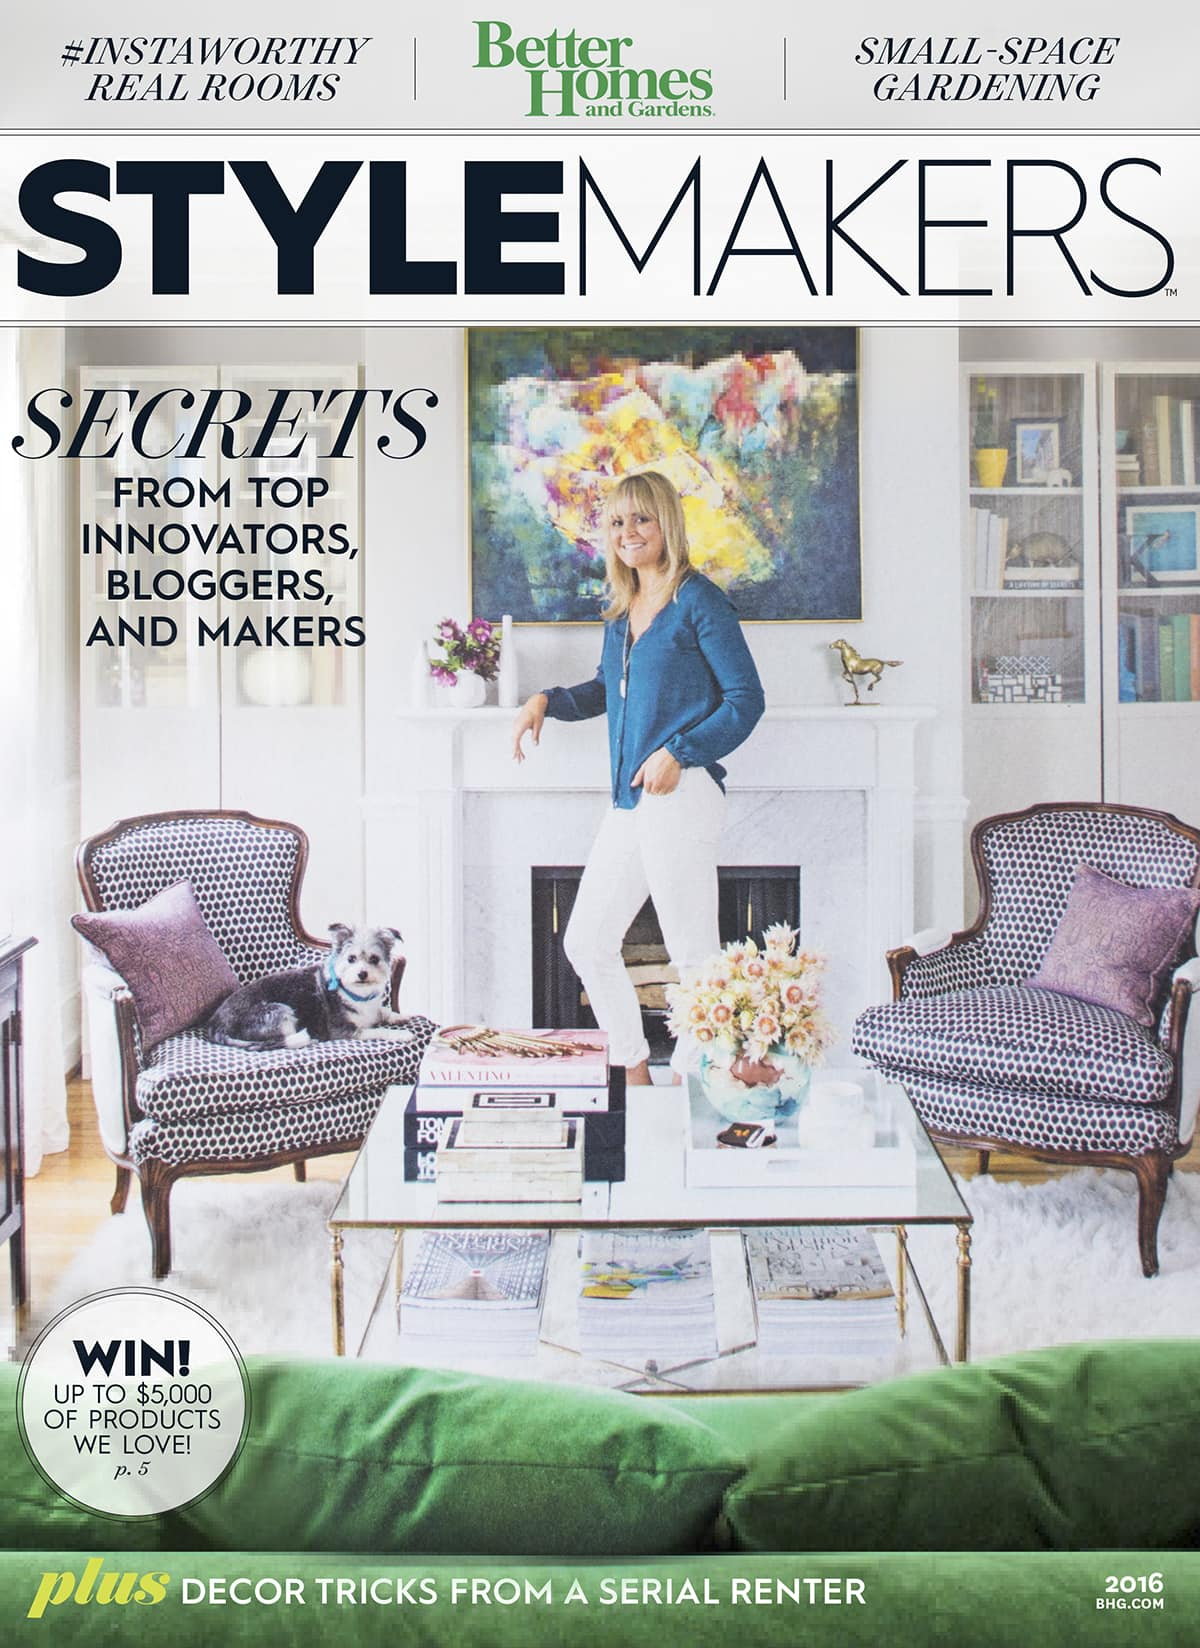 Exciting Announcement Cuckoo4design: better homes and gardens current issue